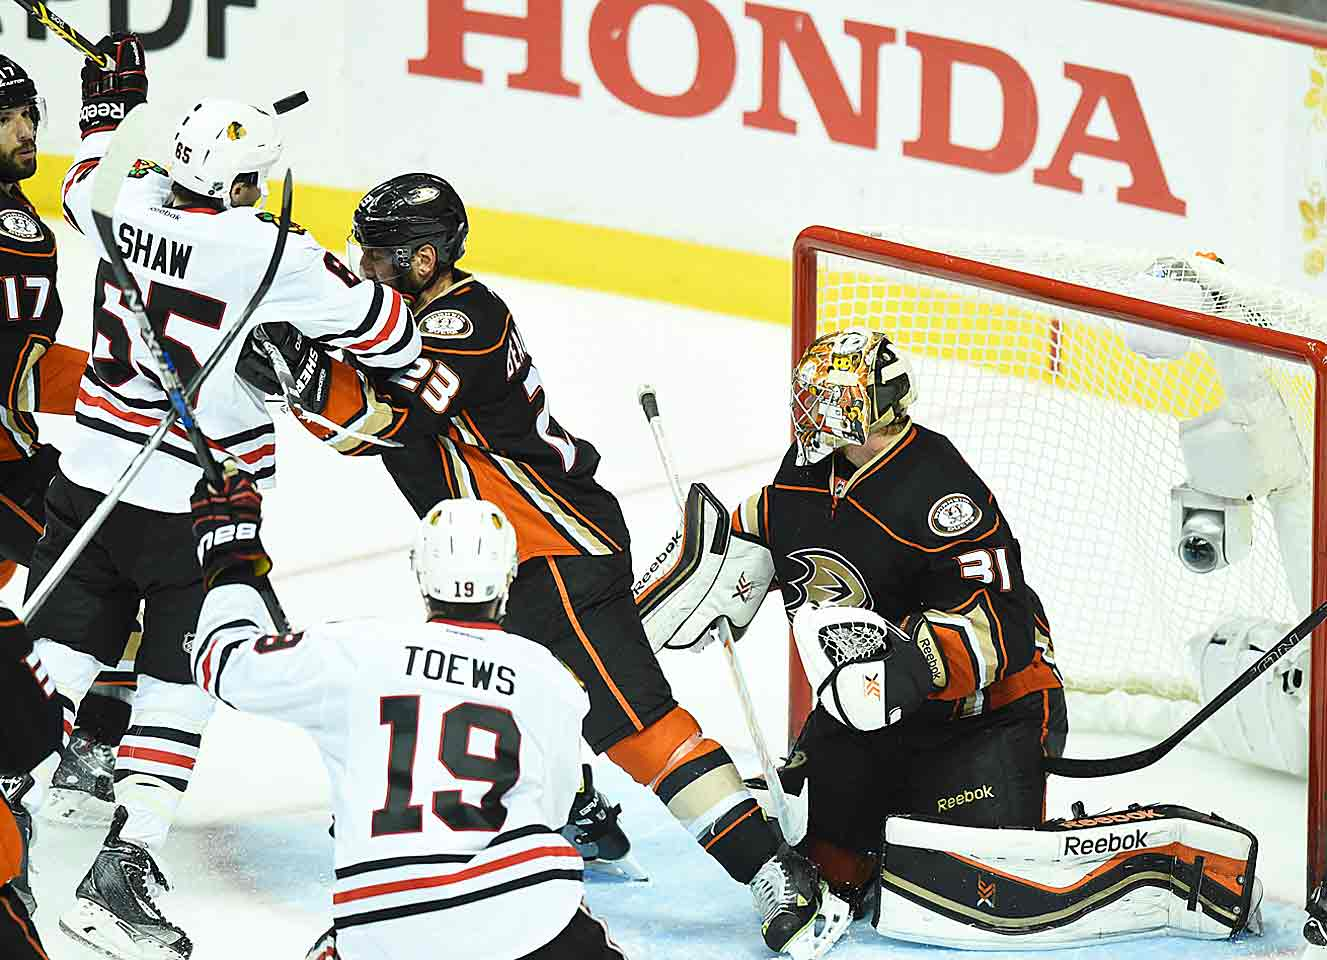 "The Hawks take Game 2 of the West finals against the Ducks, 3-2, in a 3-OT classic. Seemingly ended in the second OT by Andrew Shaw's ""header goal"" (later disallowed), the victory is finally secured by Marcus Kruger. Duncan Keith leads the way among a quartet of workhorse defensemen (including Seabrook, Oduya, Hjalmarsson), making up for Rozsival's absence with a staggering 49:51 of ice time. It's the second time in 12 playoffs games that Keith passes the 45-minute mark."